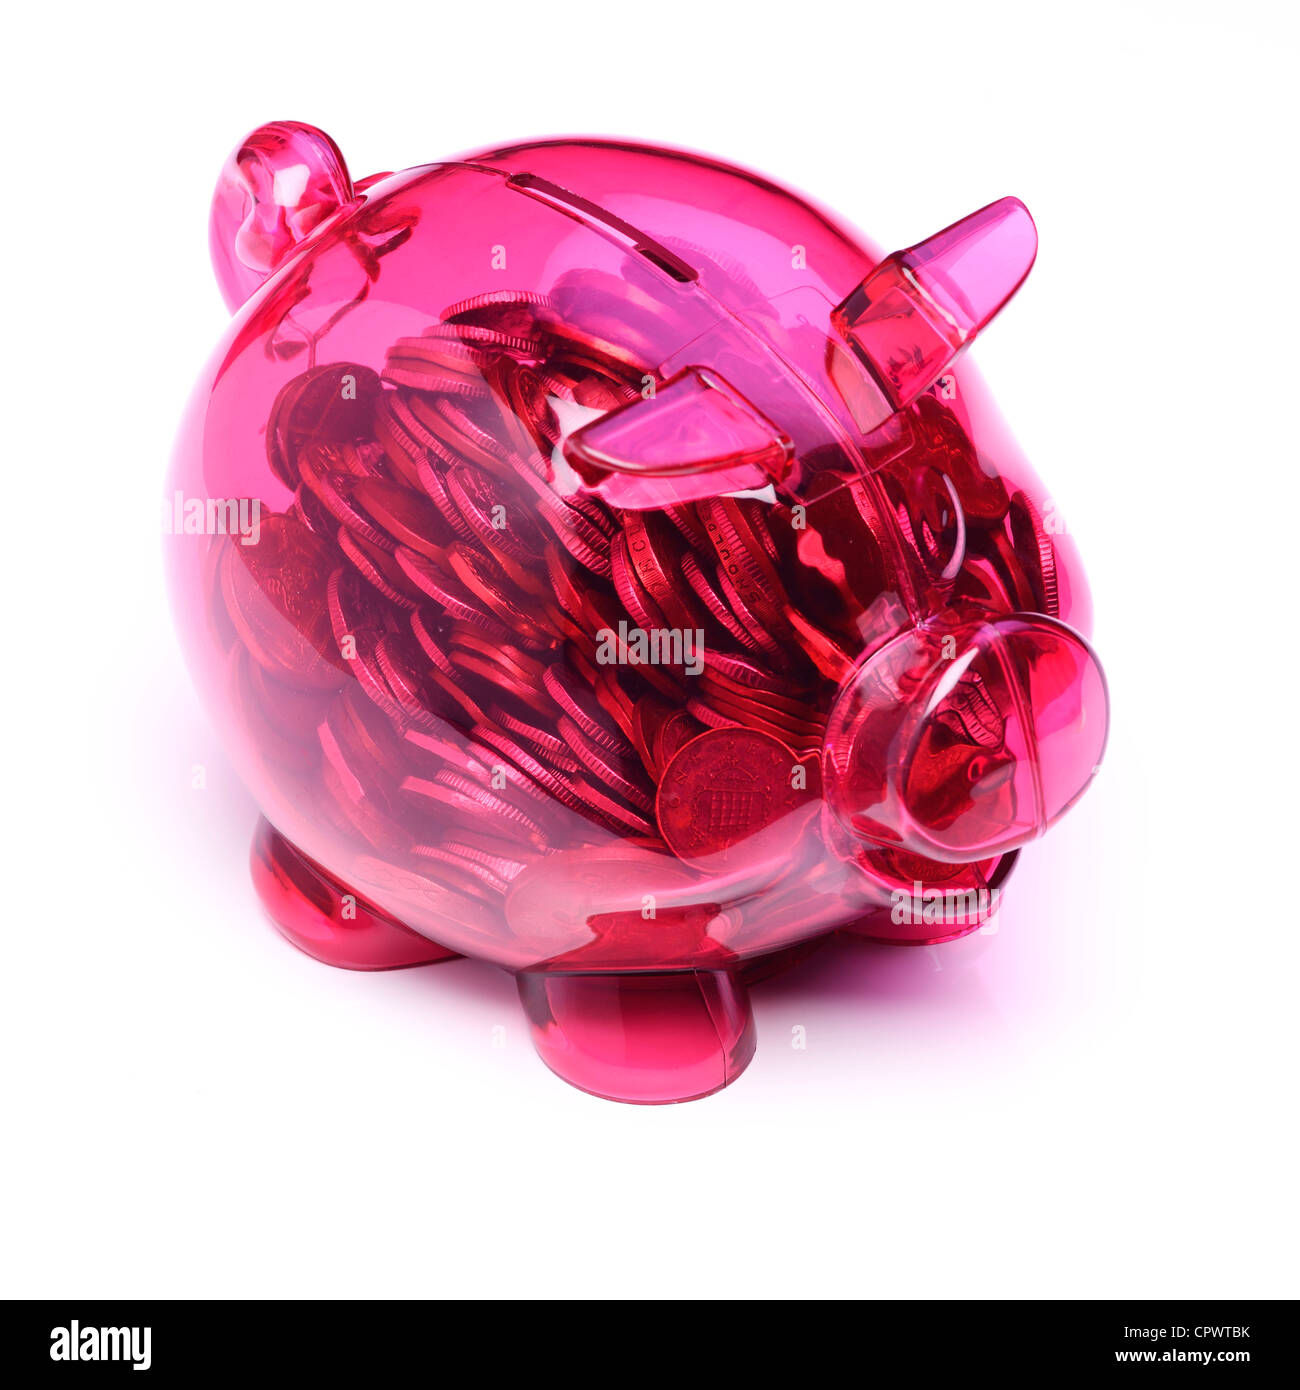 Transparent pink plastic piggy bank full of coins - Stock Image